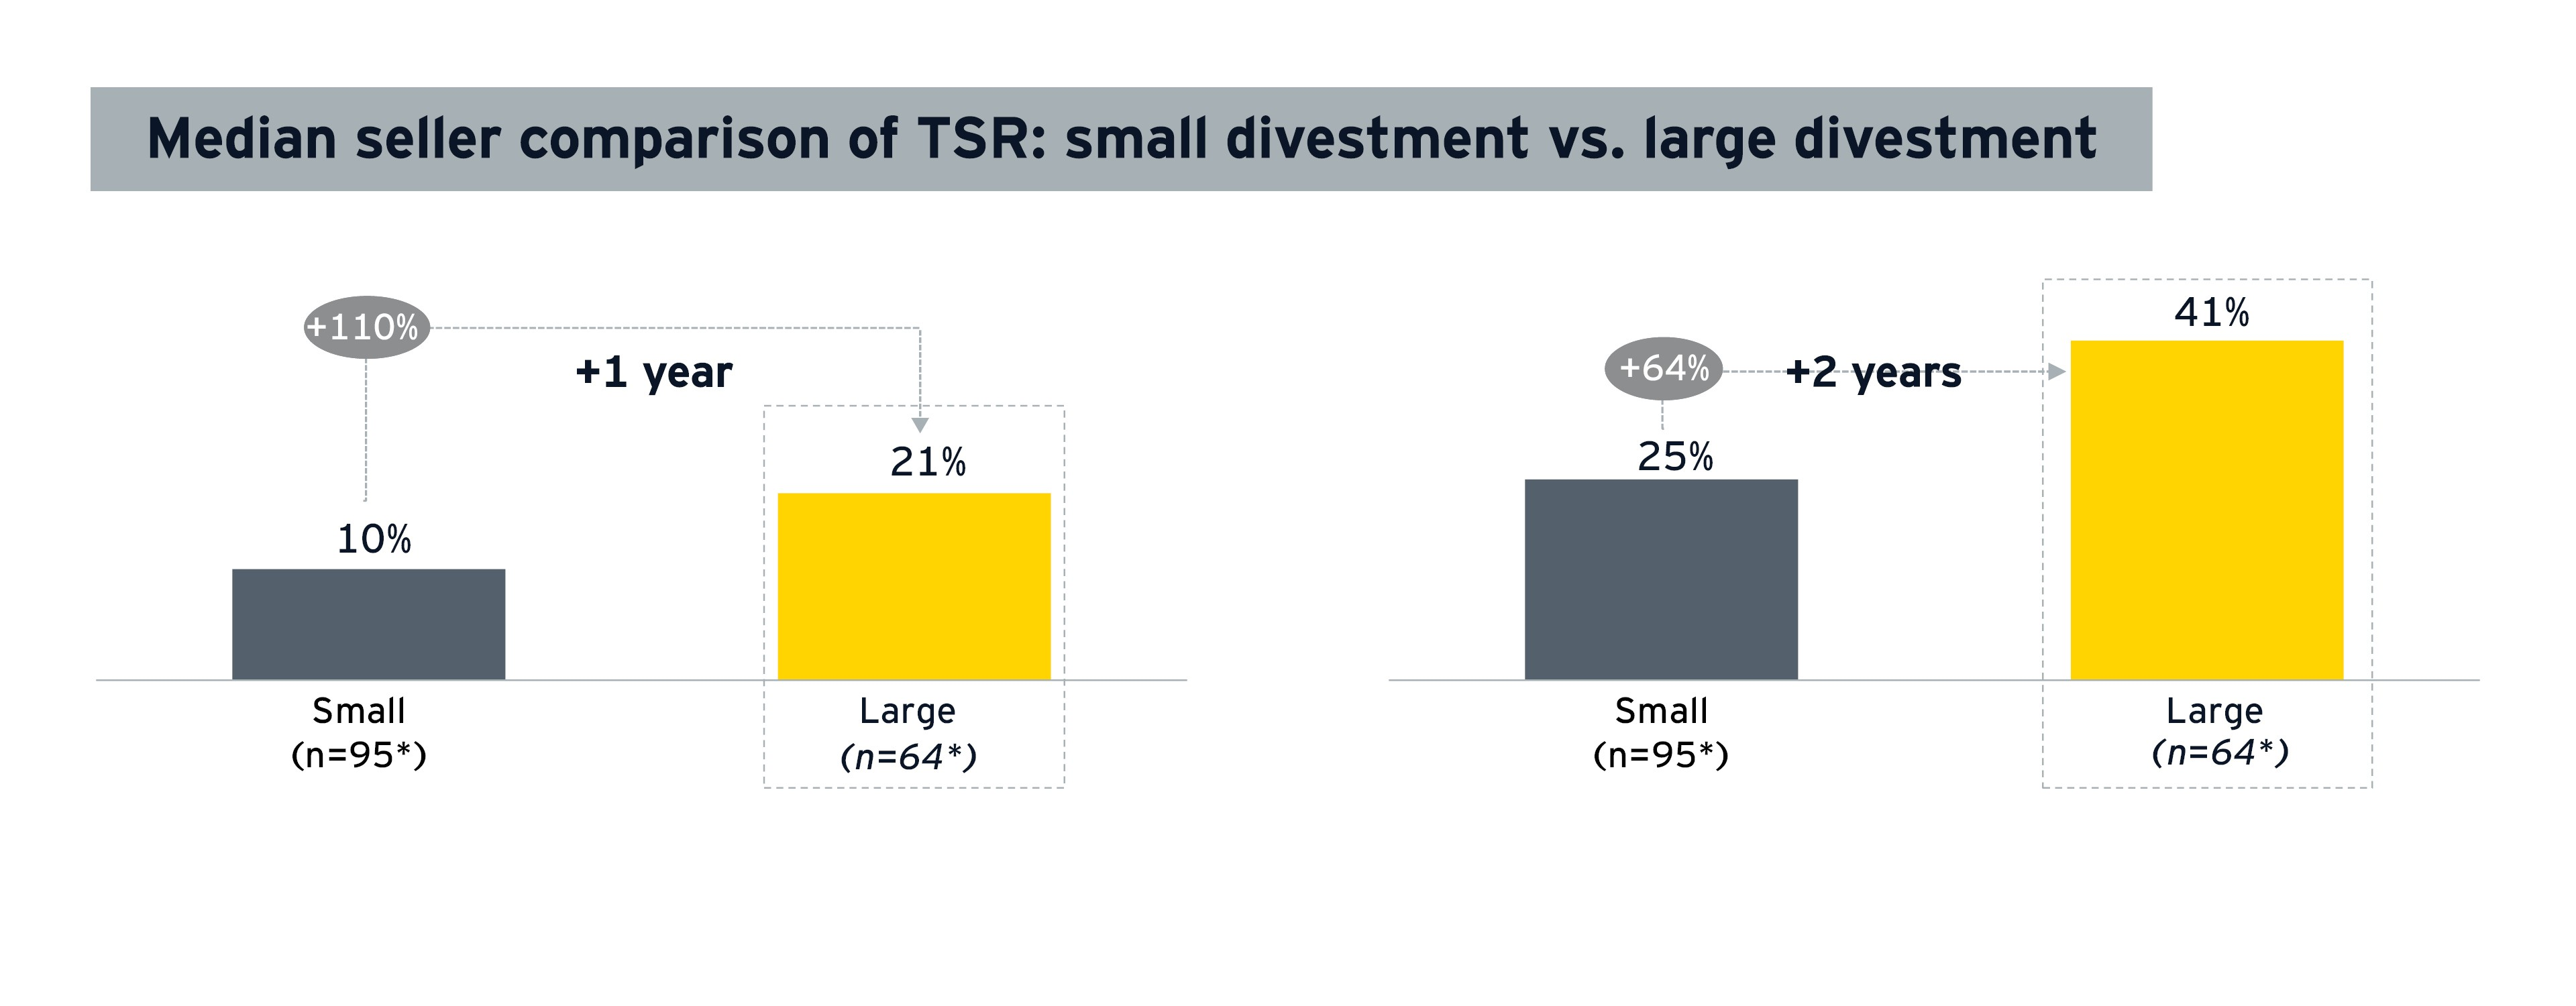 Median seller comparison of TSR small vs. large tech company divestment